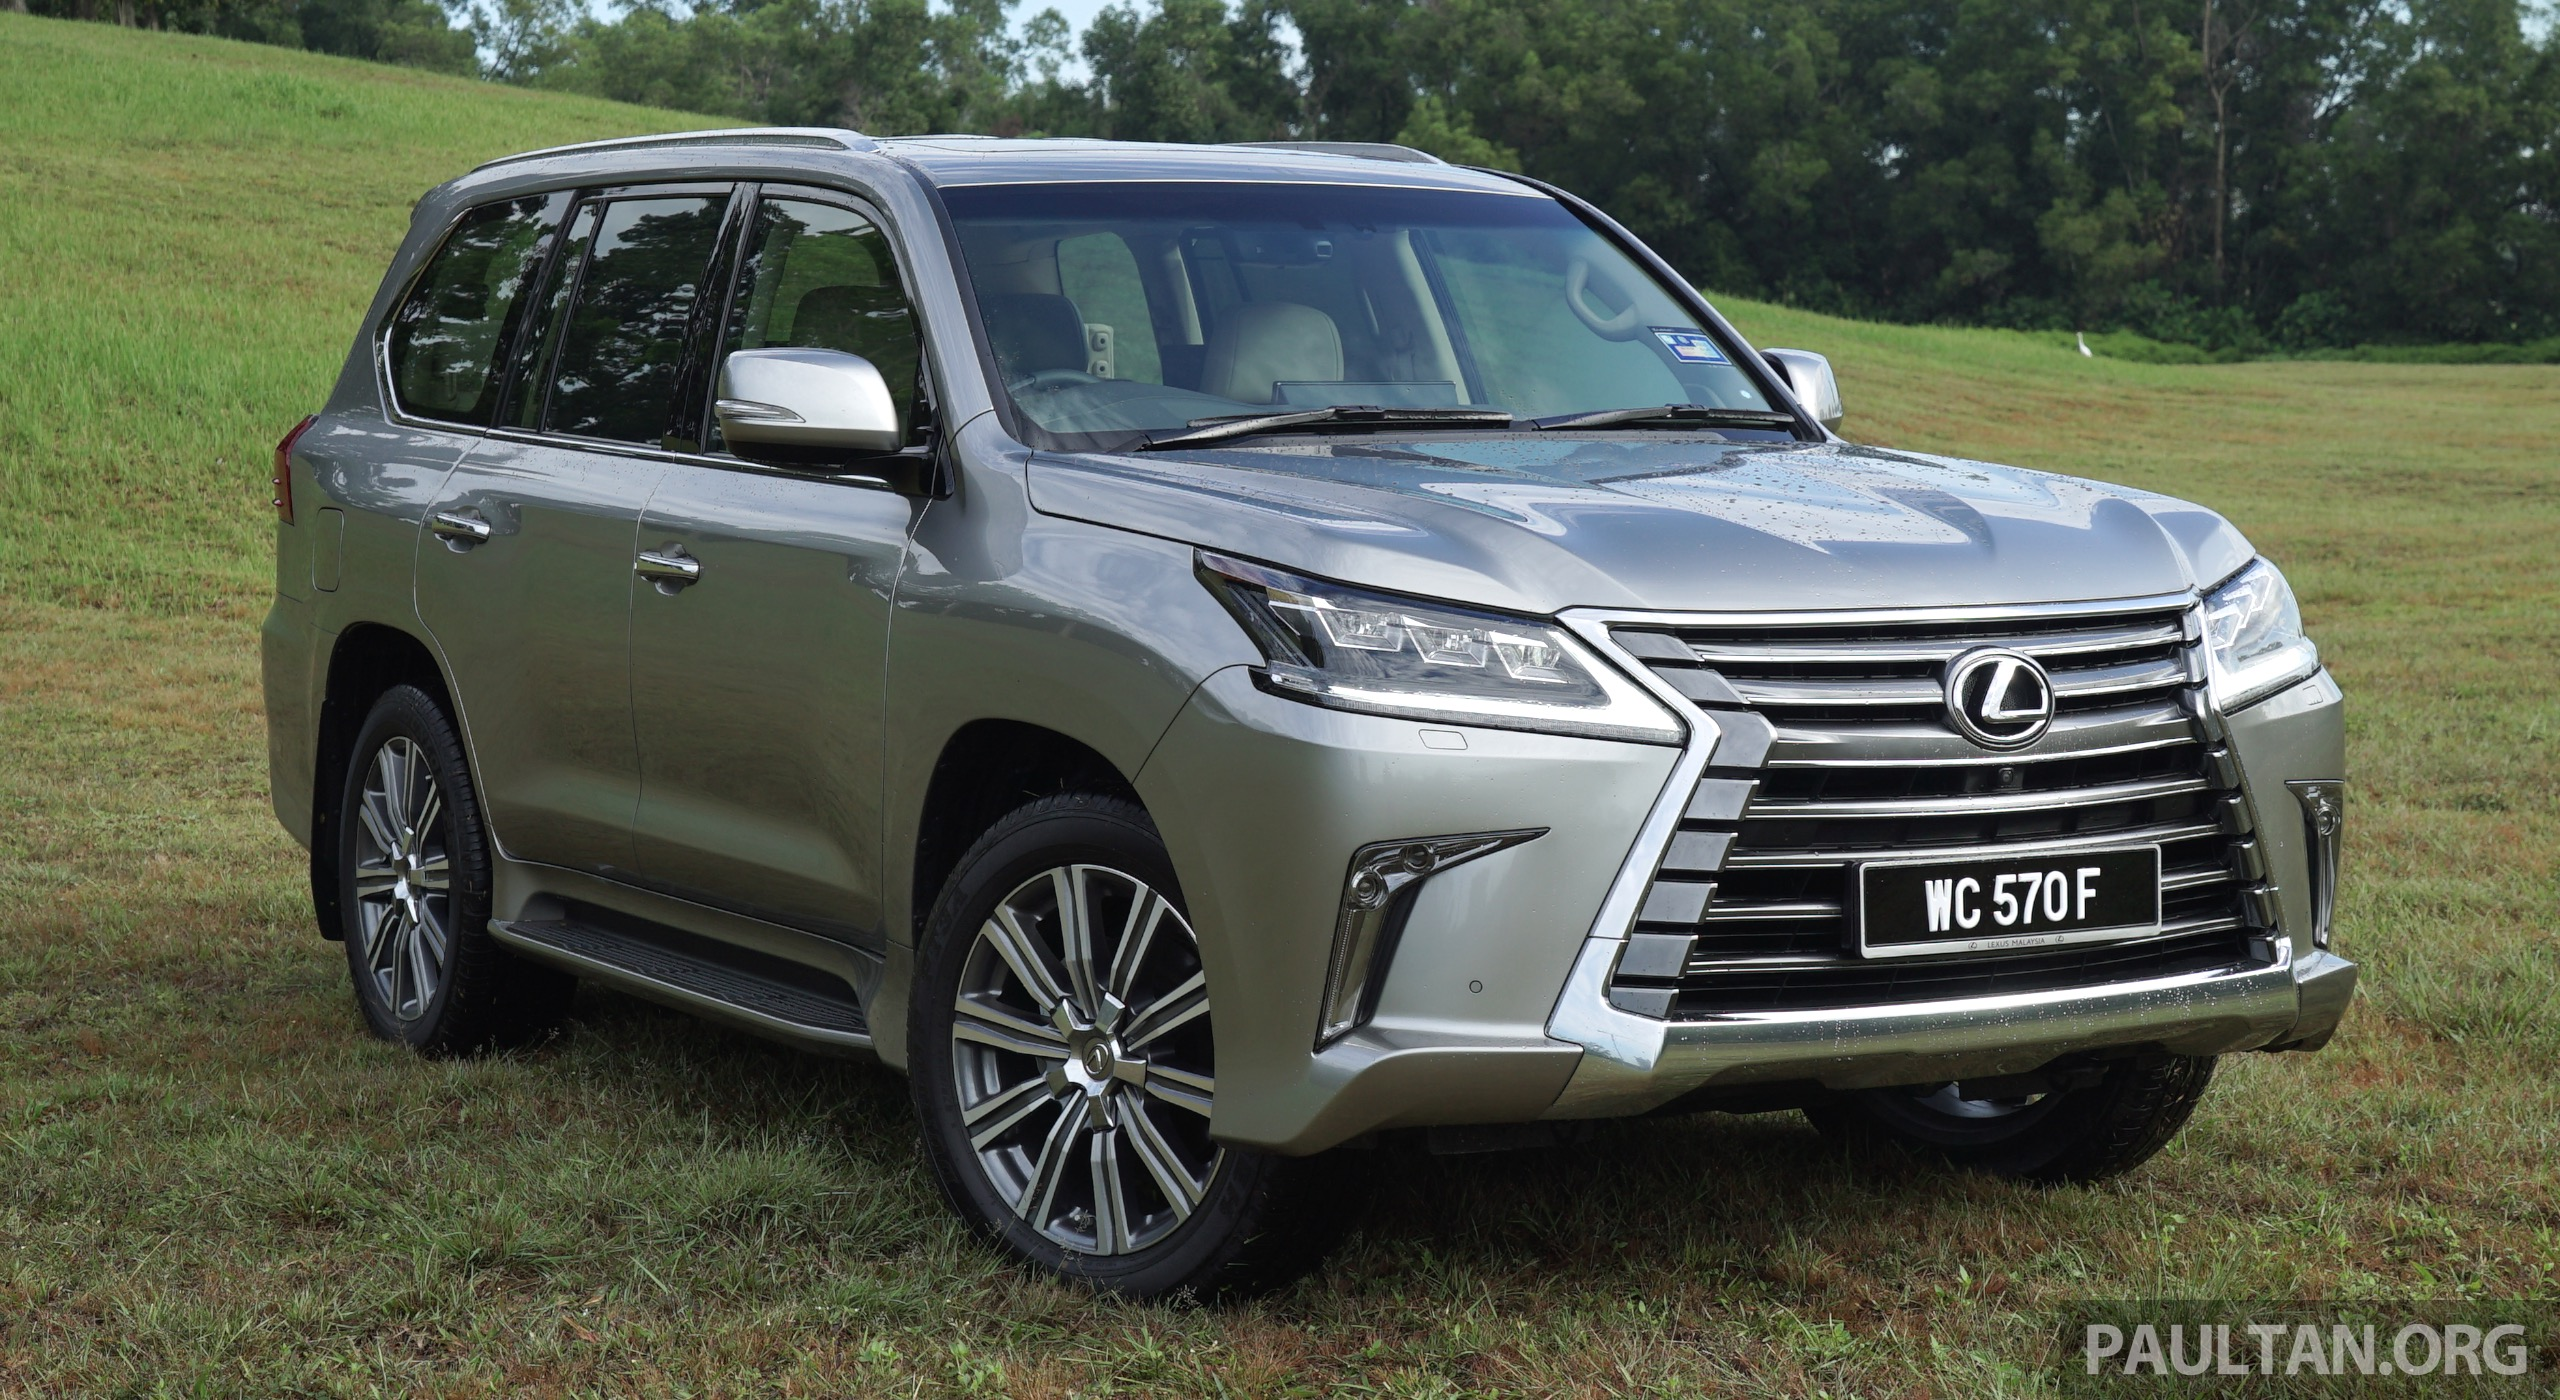 Lexus Lx570 Price Drops By Rm74k In Malaysia To Rm850k